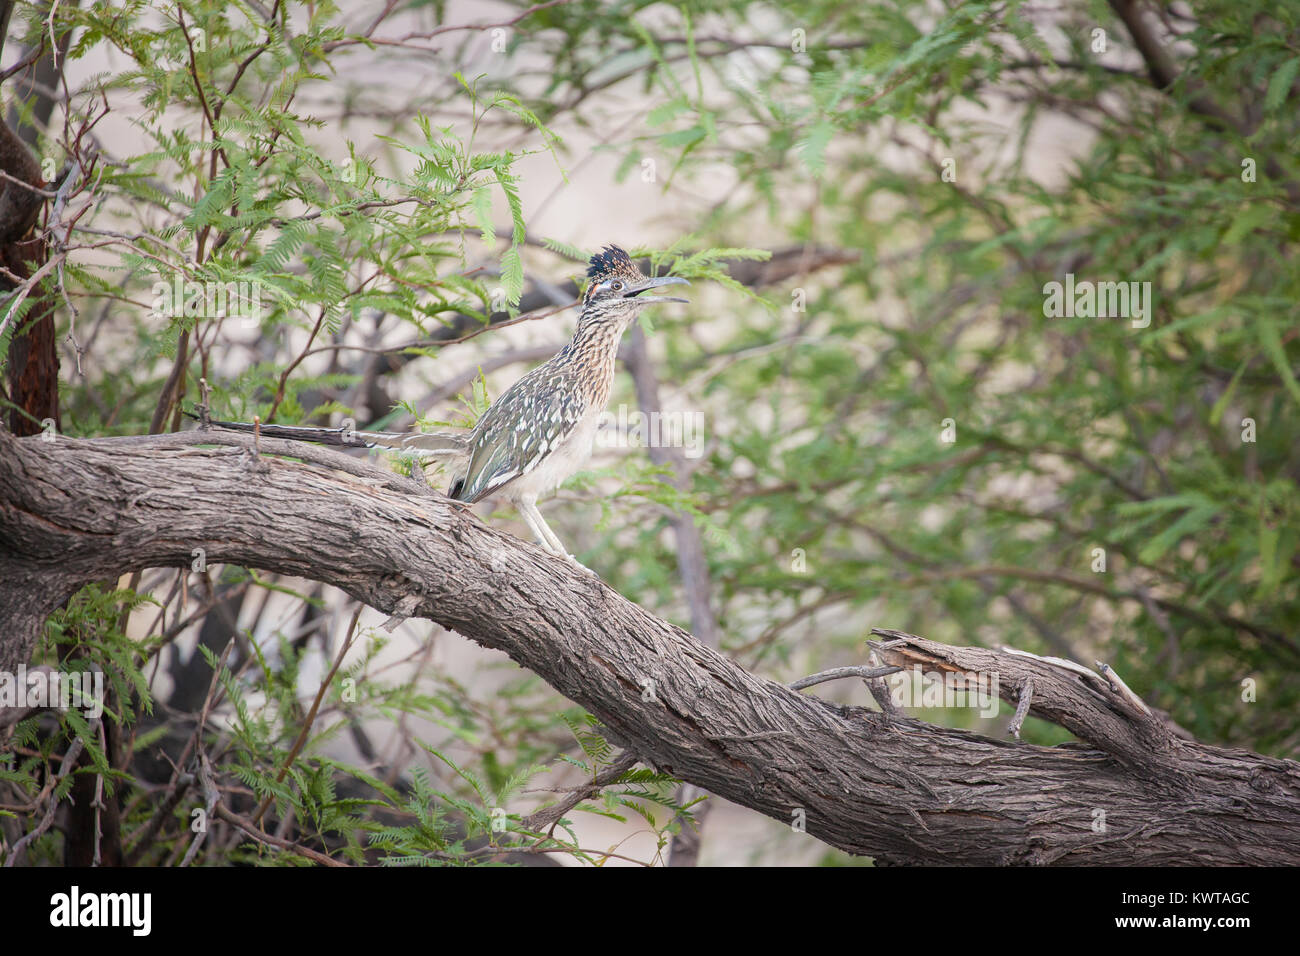 Greater roadrunner (Geococcyx californianus) with mouth open in Anza-Borrego Desert State Park, California, USA. Stock Photo